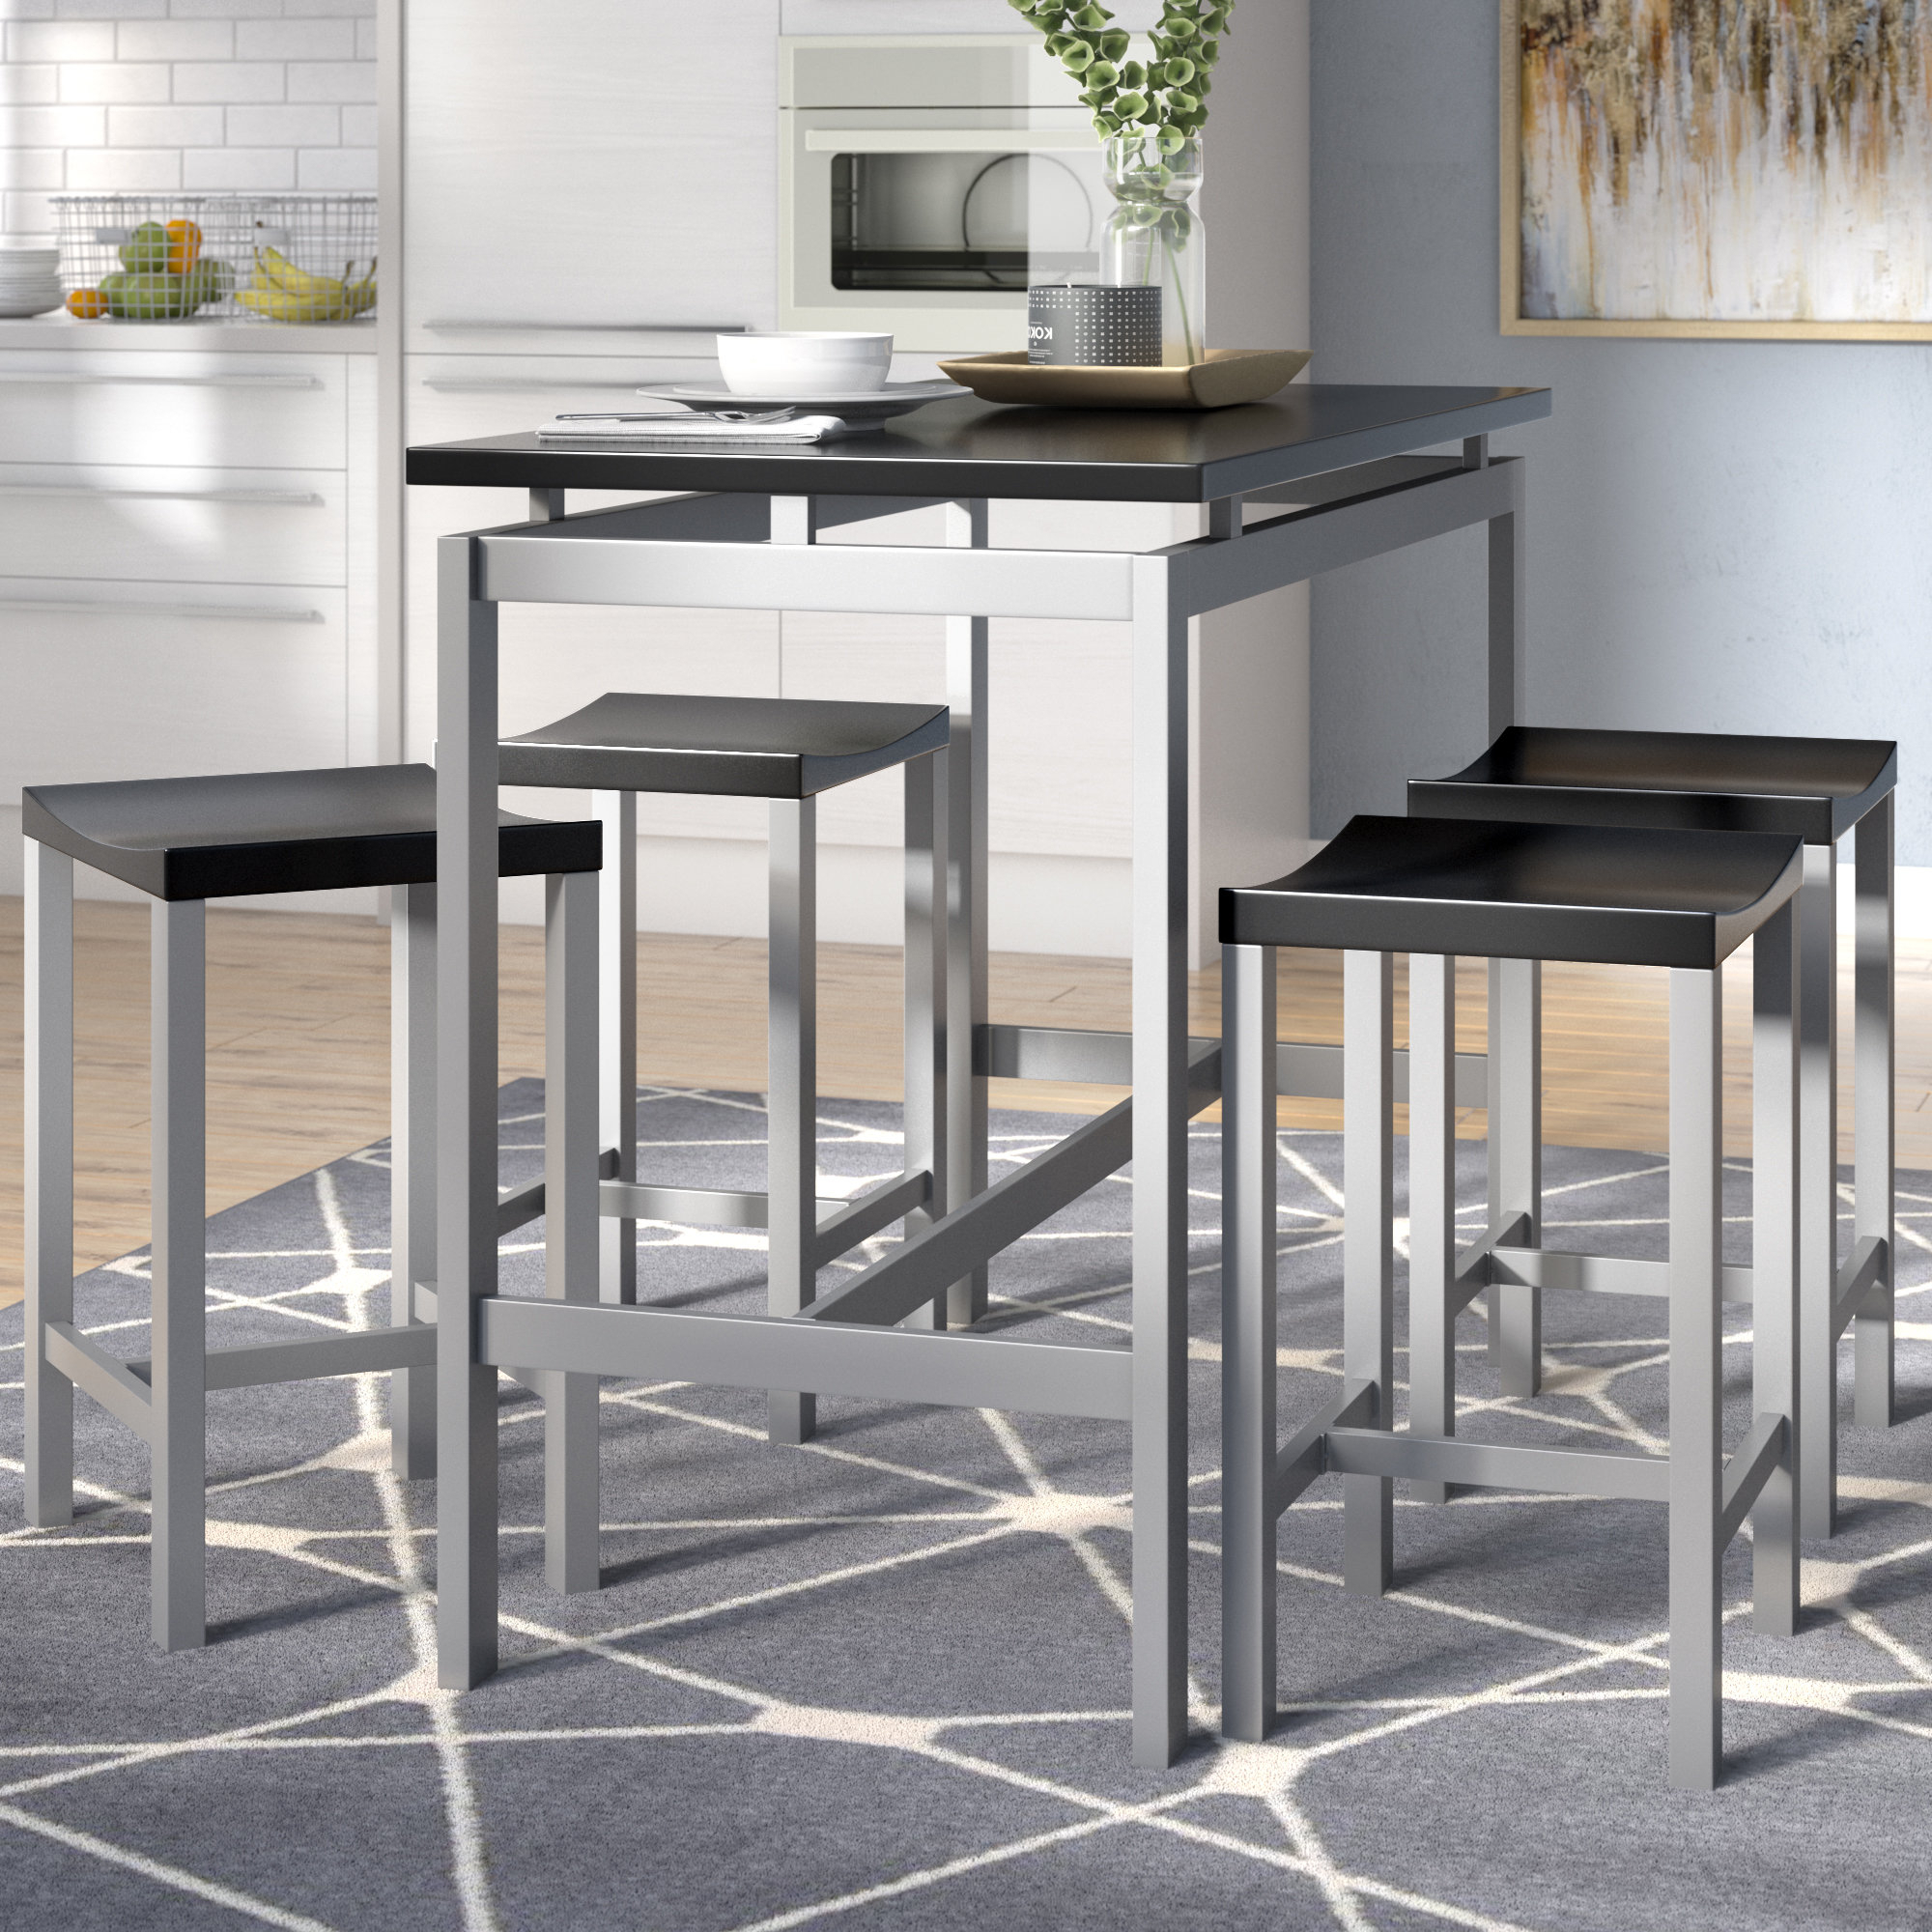 Saintcroix 3 Piece Dining Sets Regarding Widely Used Mcgonigal 5 Piece Pub Table Set (View 17 of 20)